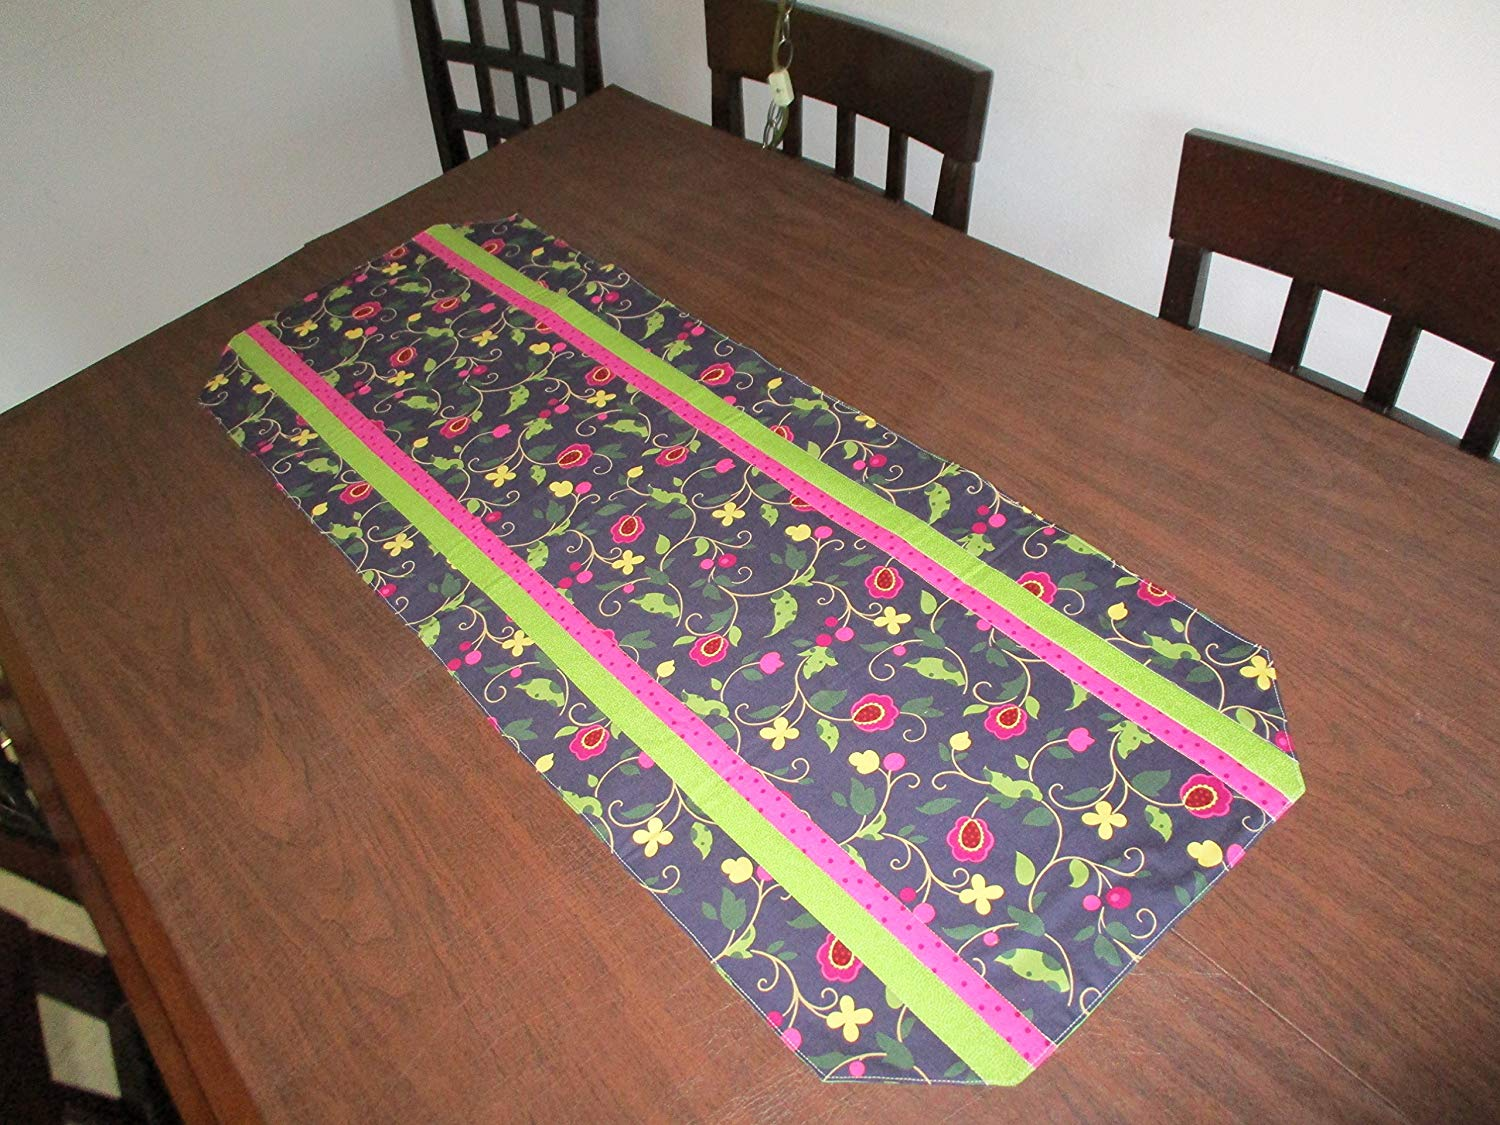 lime green table cloths find accent get quotations runner dark blue floral with pink and accents pier one promo code nautical pendant lighting fixtures pottery barn metal coffee